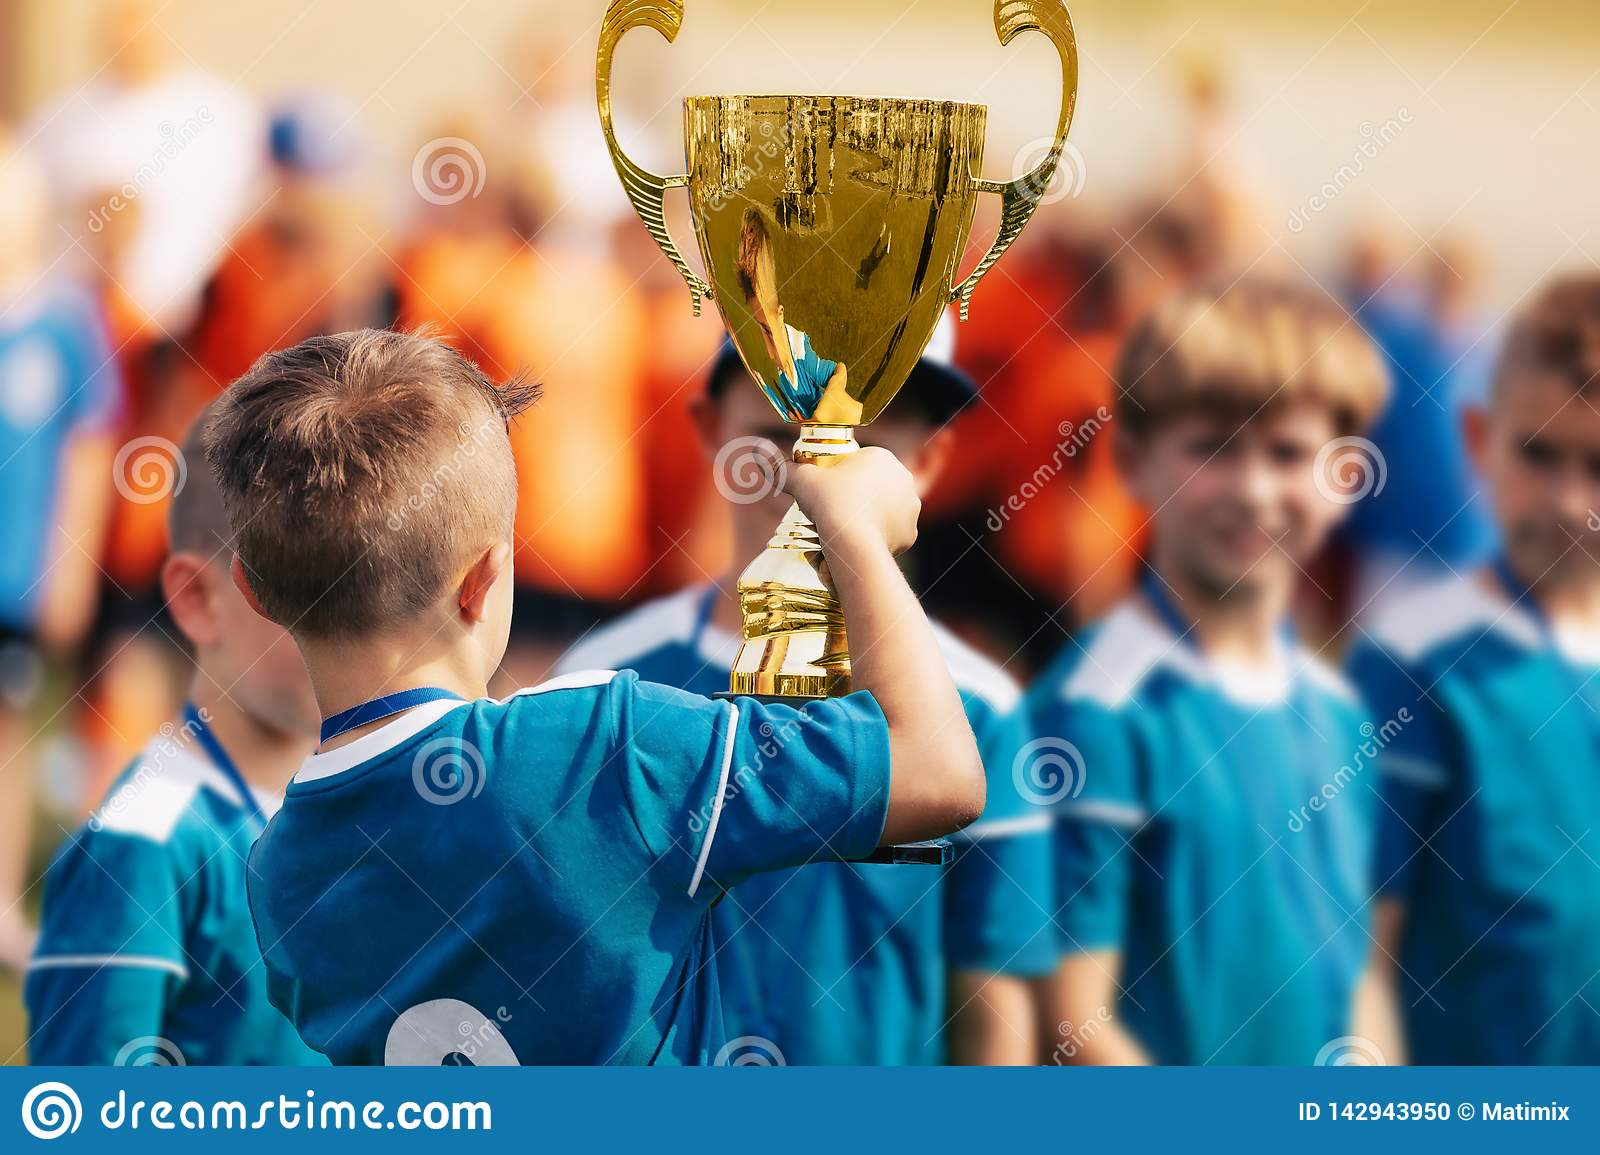 Boy holding golden trophy and celebrating sport success with team